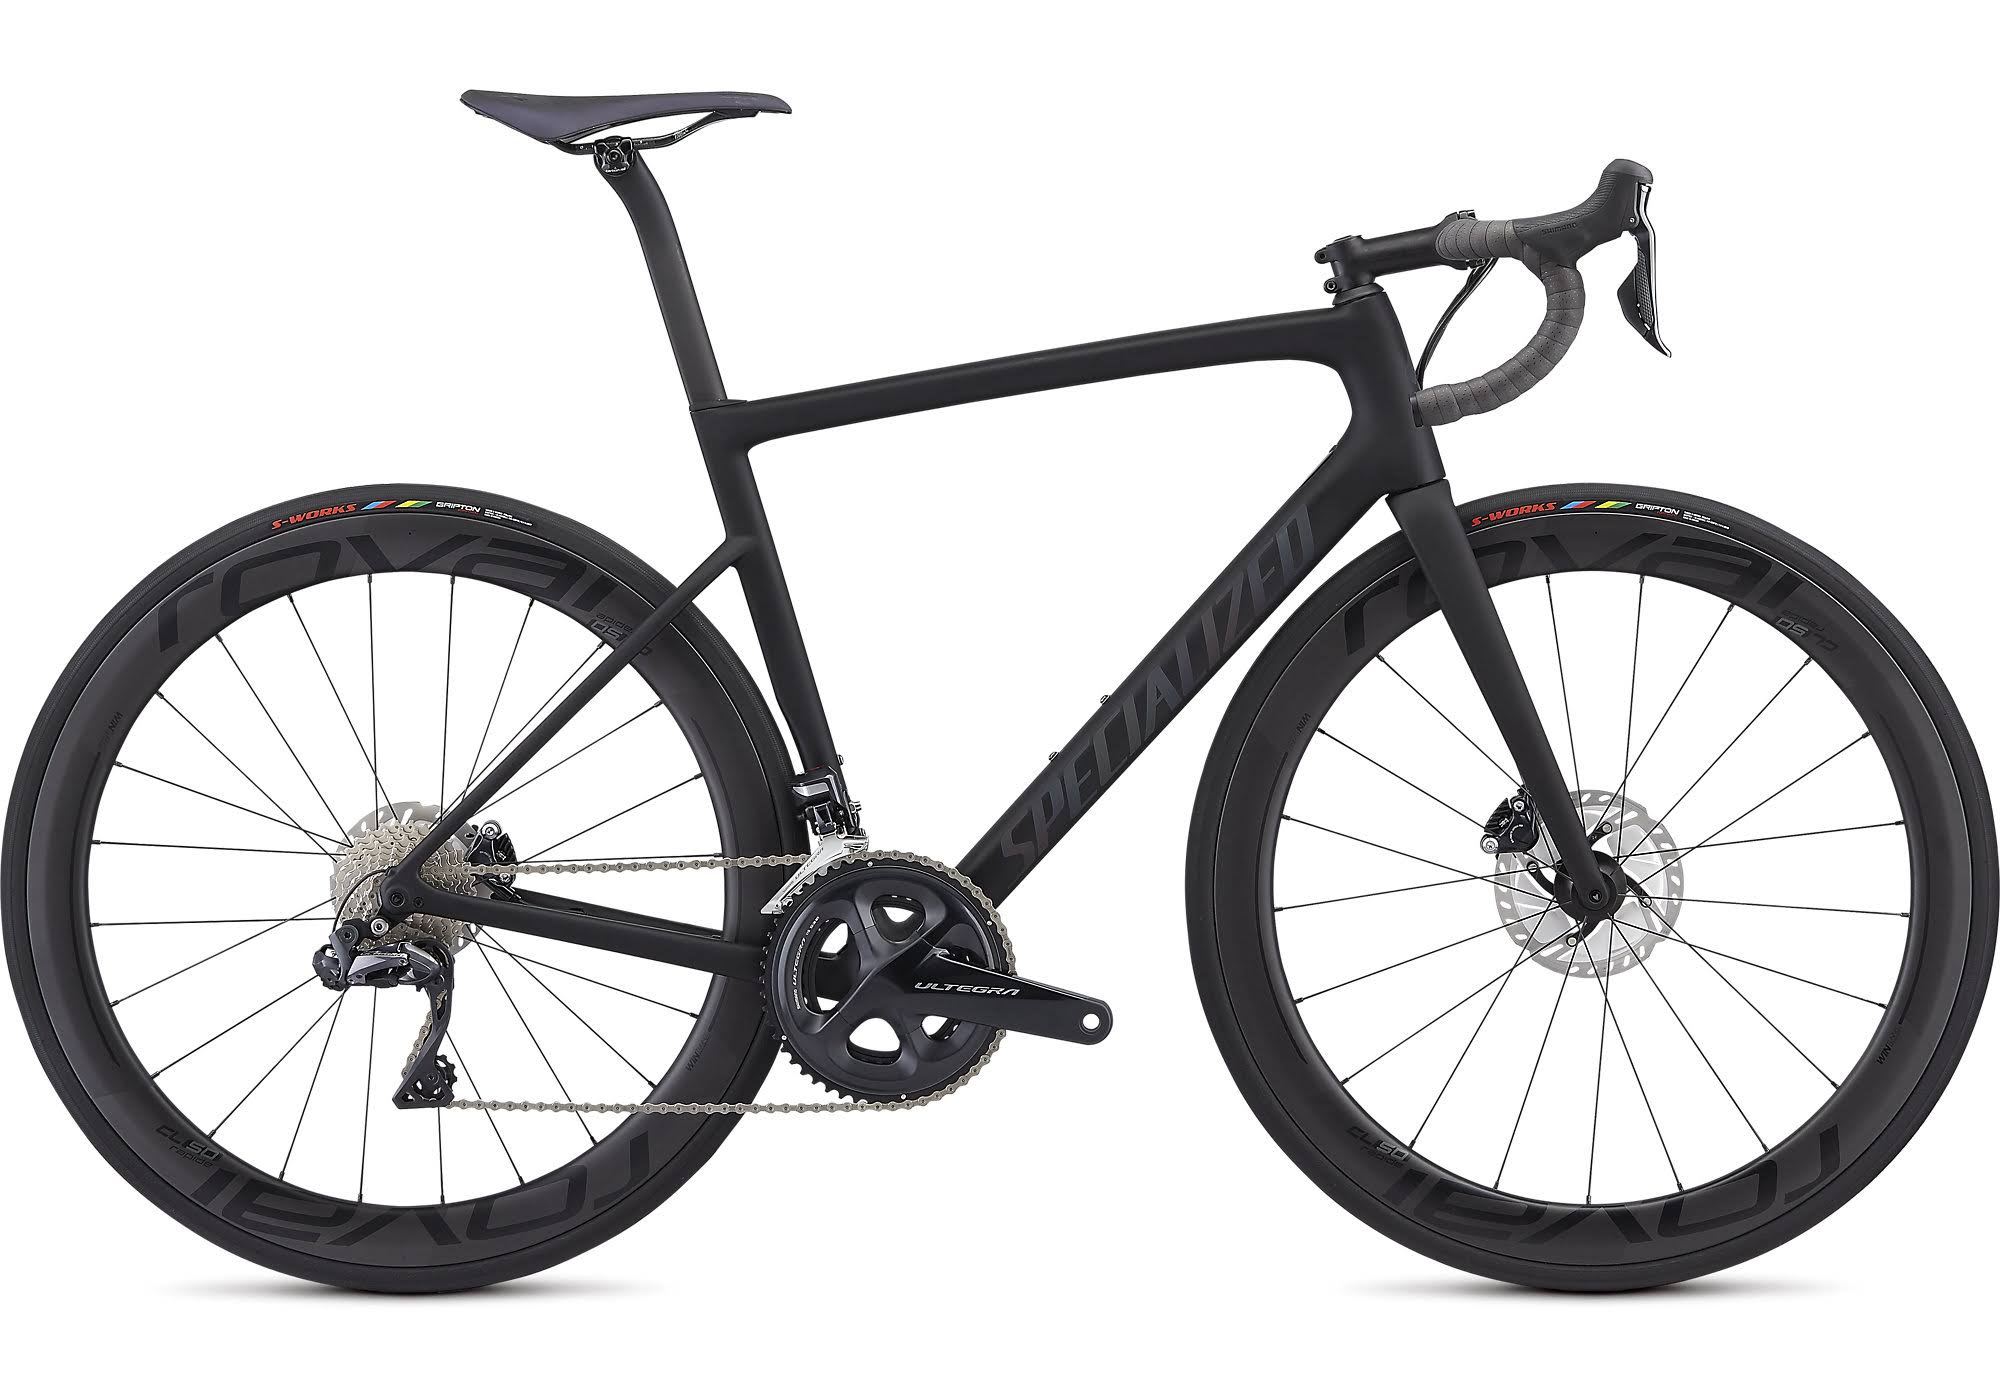 Specialized Tarmac Disc Pro 2019 Road Bike - Black